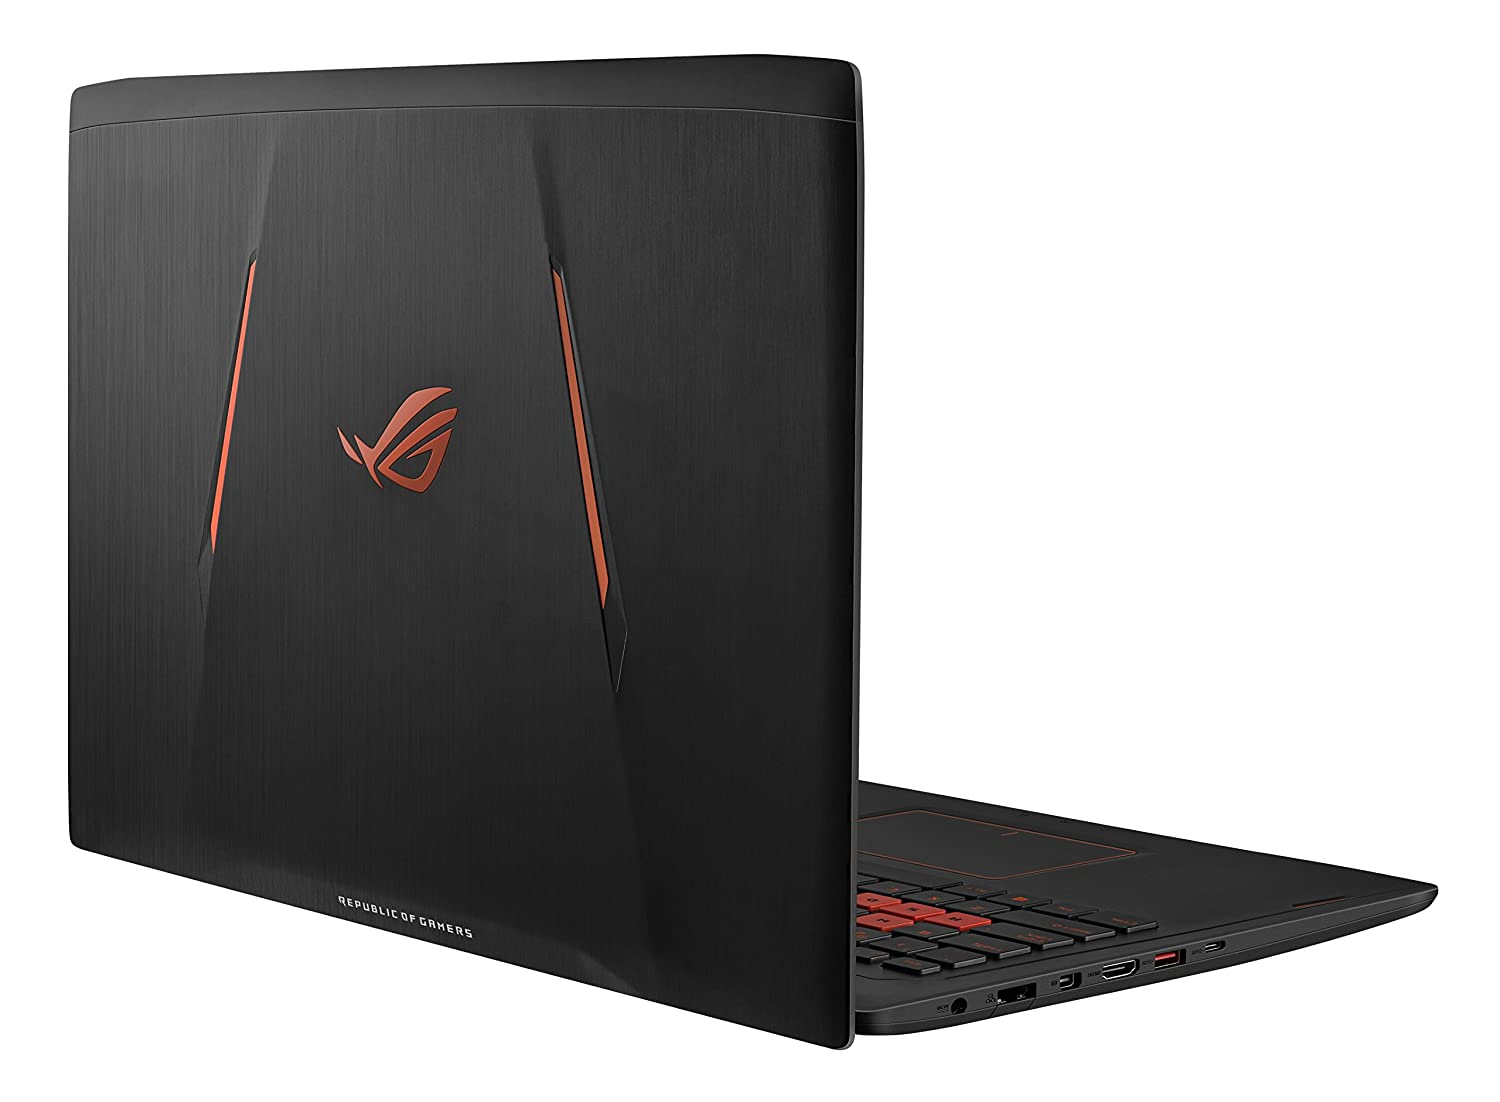 Asus ROG GL502VT-FY010T 15 Zoll Gaming Notebook im Test